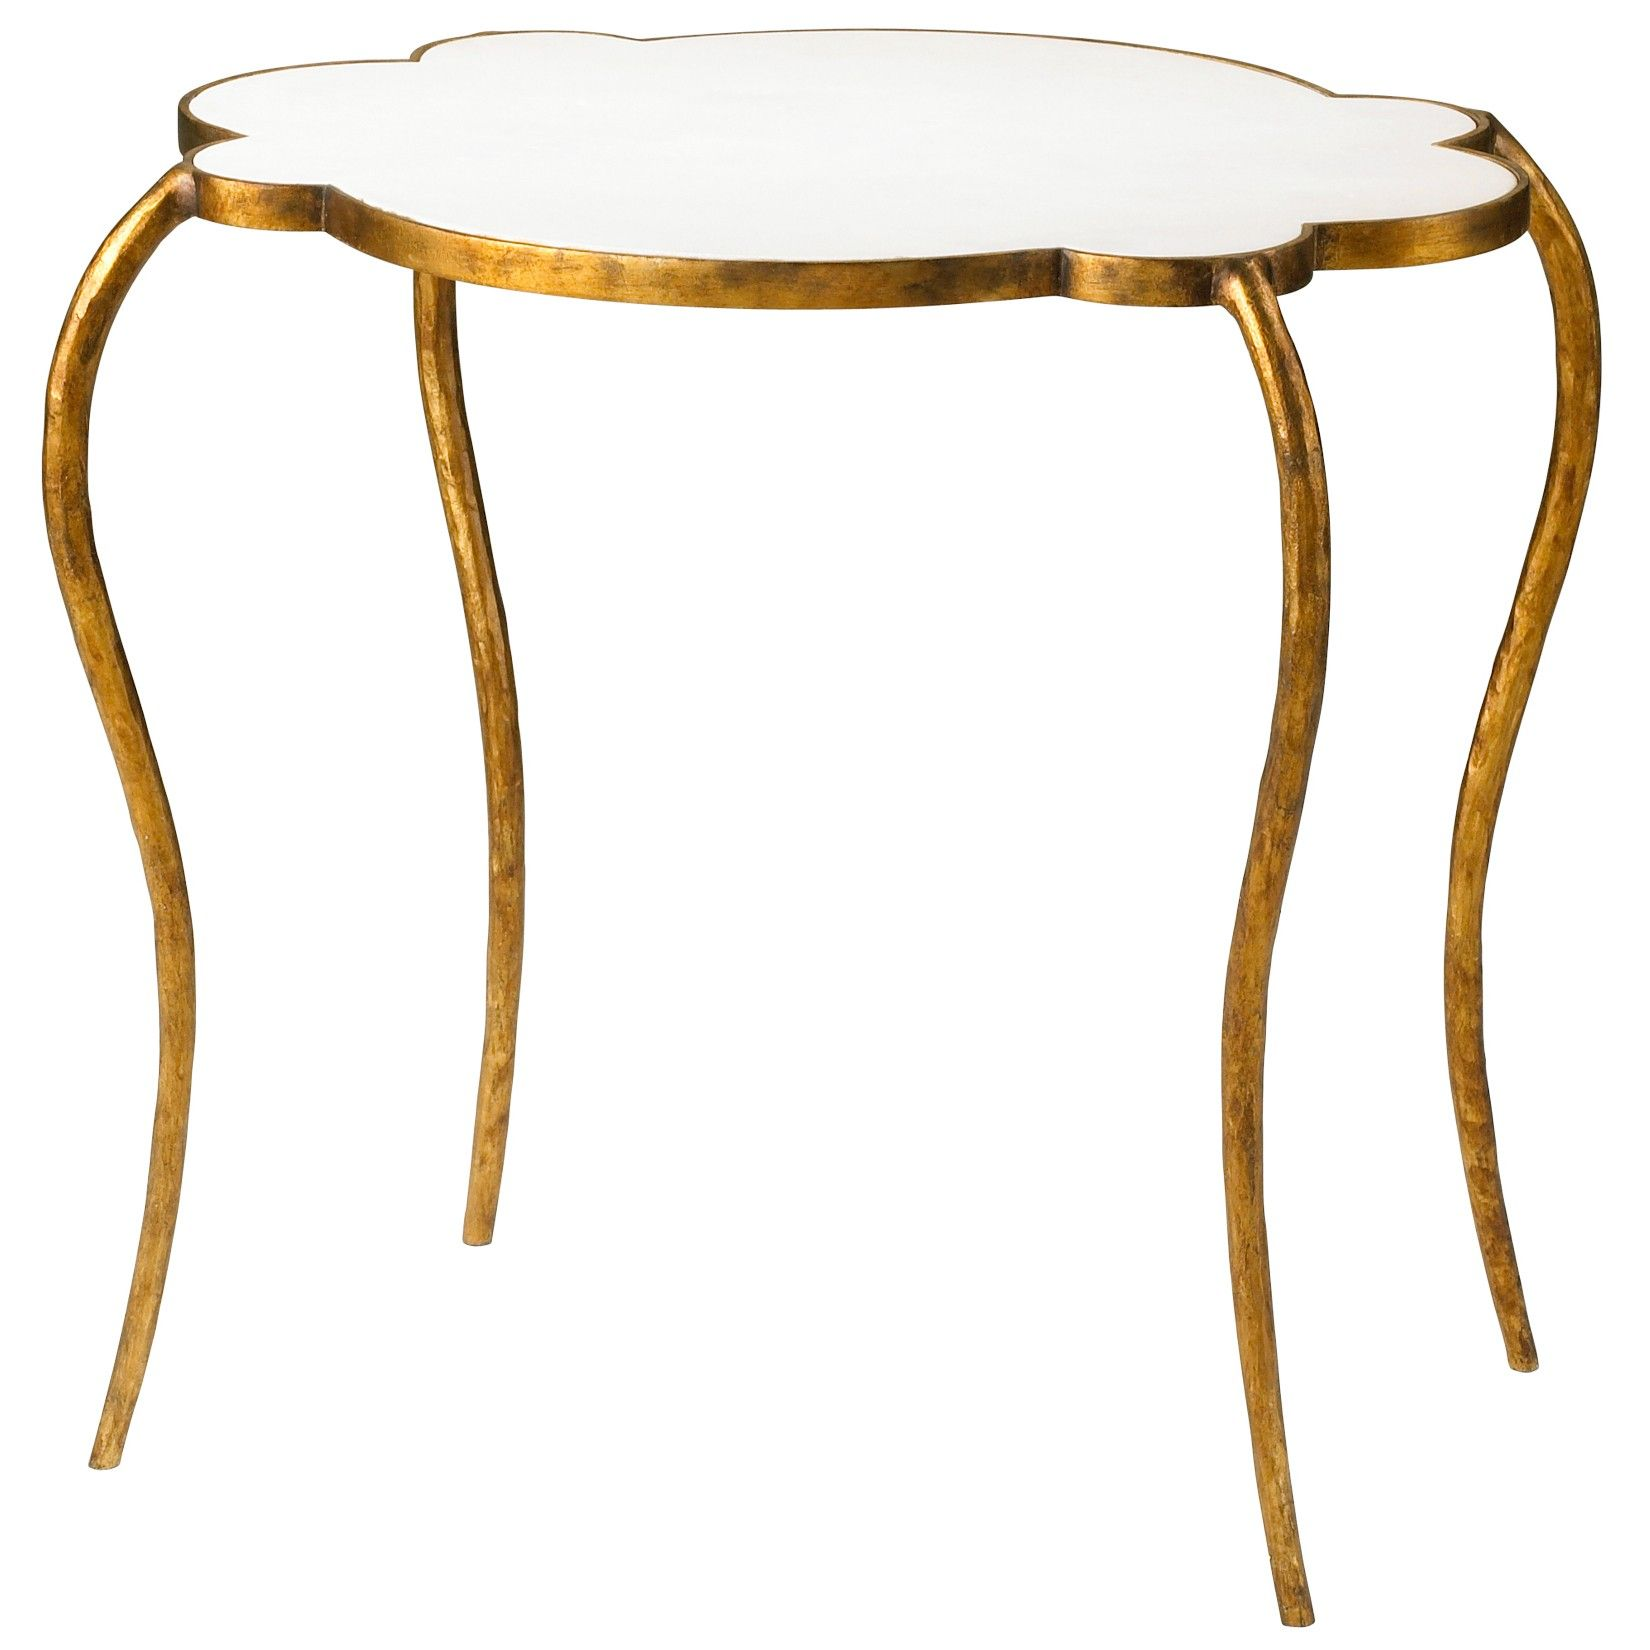 Cyan Flora Side Table Small is part of Home Accessories Styling Side Tables - Small Flora Side Table 23 25 (l) x 18 5 (w) x 22 25 (h) Gold Leaf